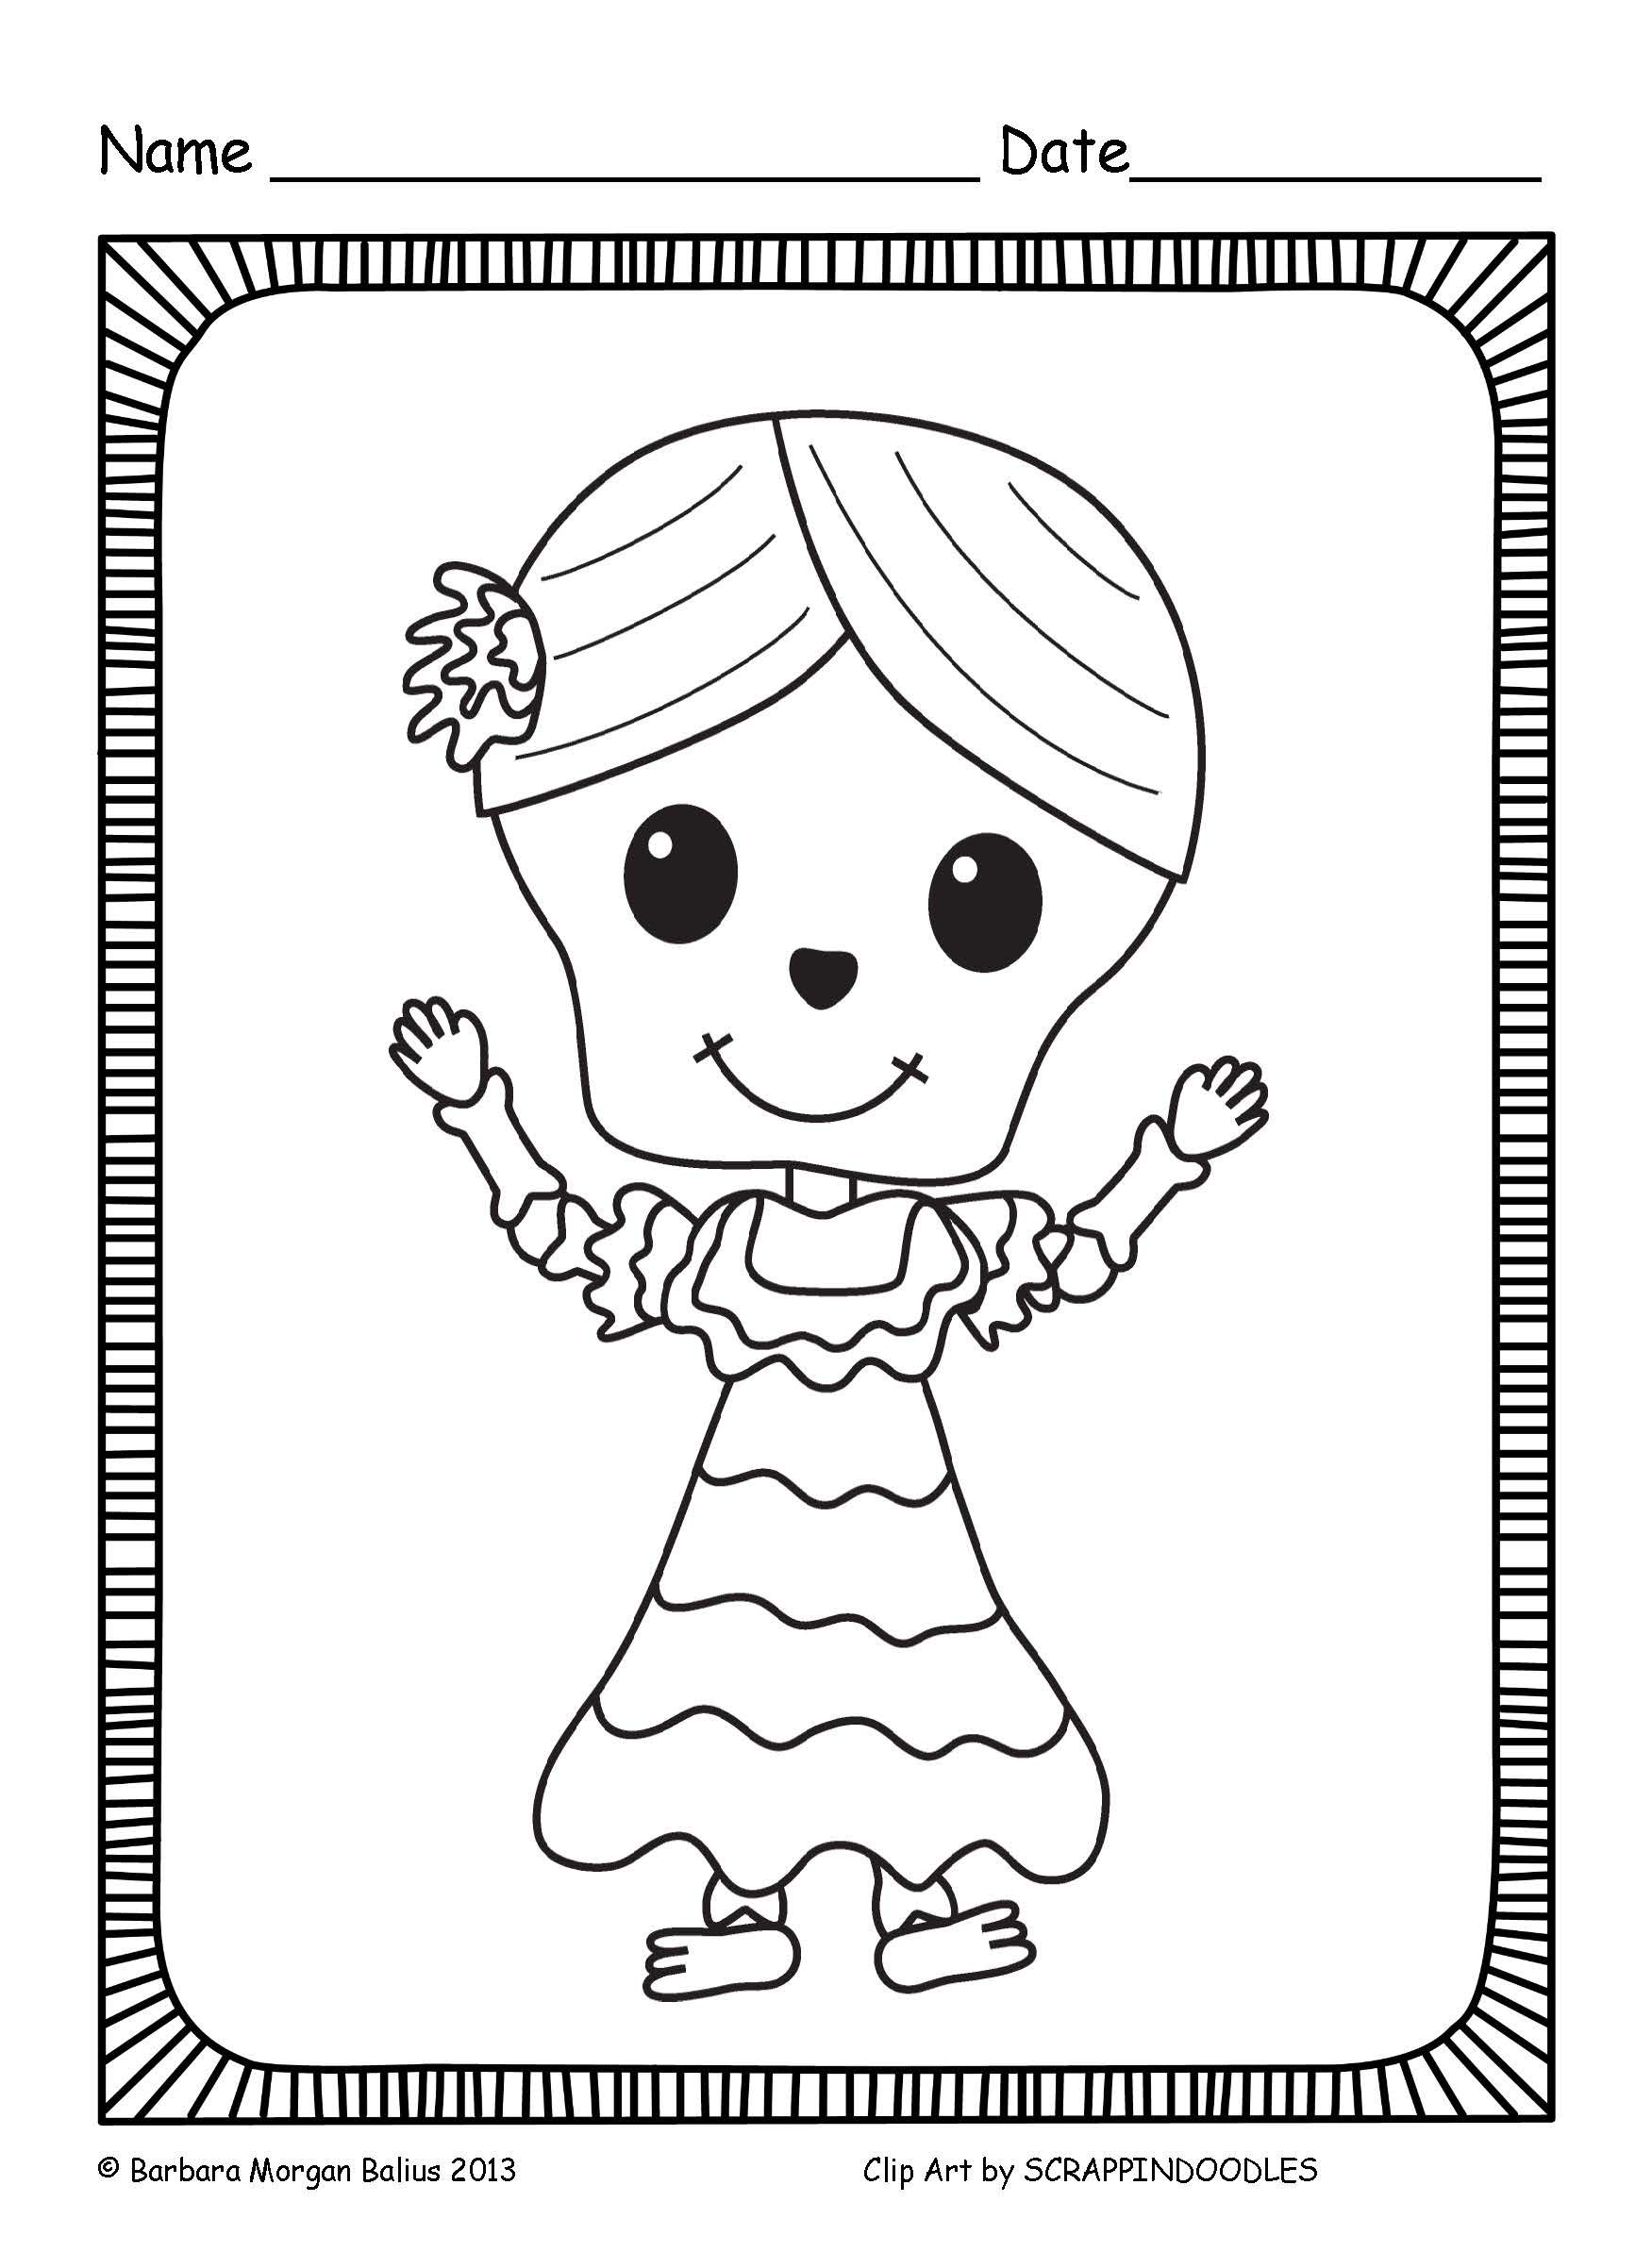 I Can Color Dia De Los Muertos Coloring Sheets Dia De